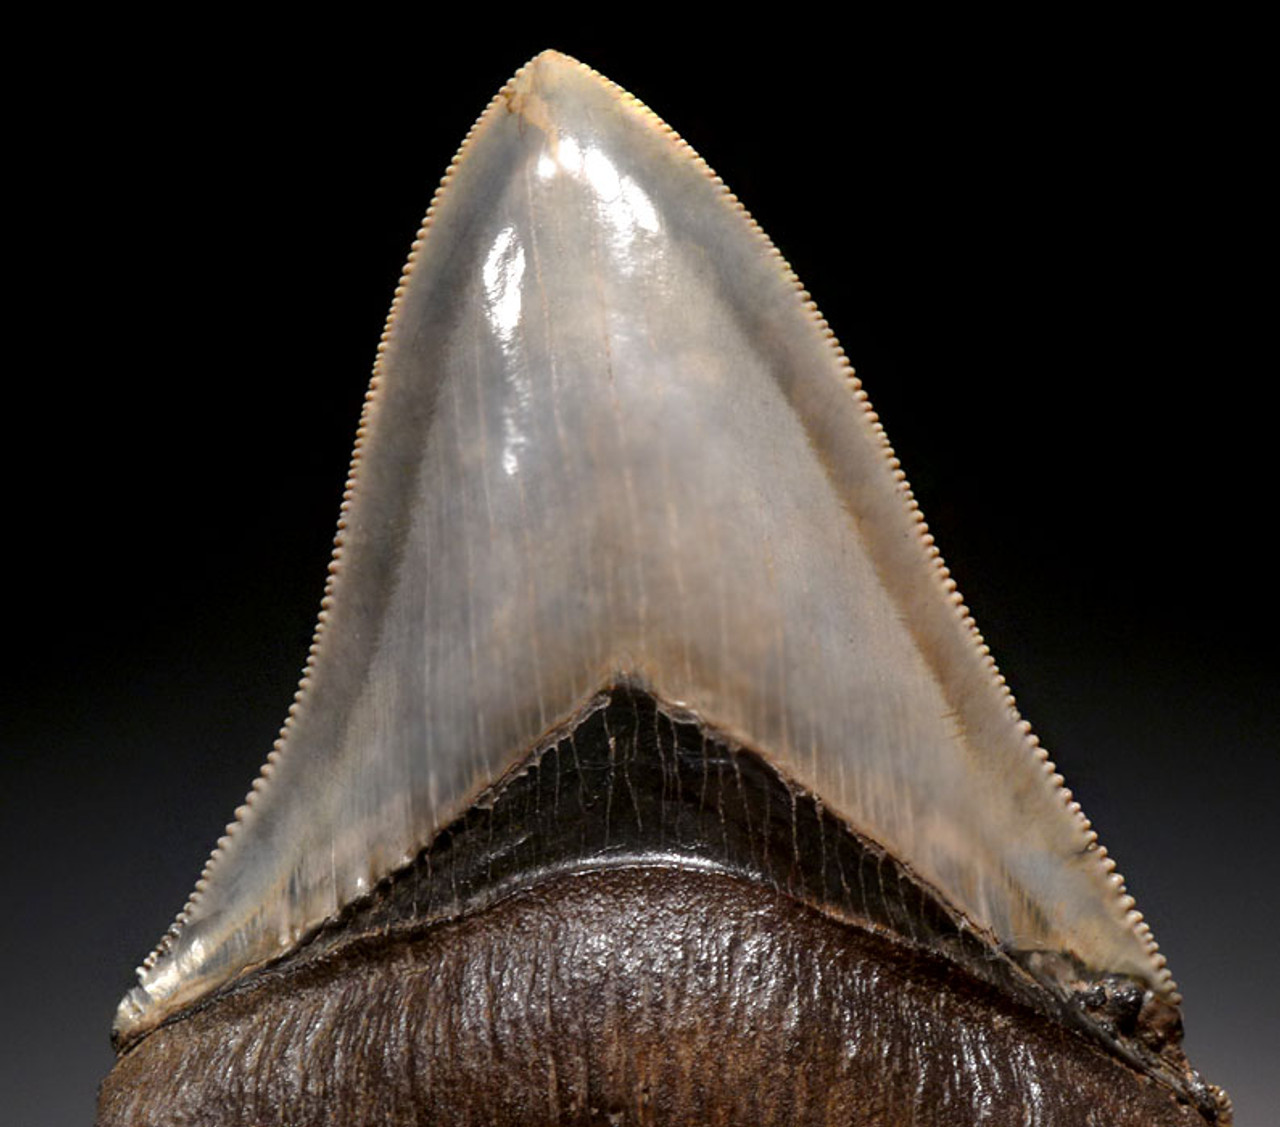 SH6-279 - FINEST INVESTMENT GRADE 3.9 INCH MEGALODON SHARK TOOTH WITH STUNNING PRESERVATION